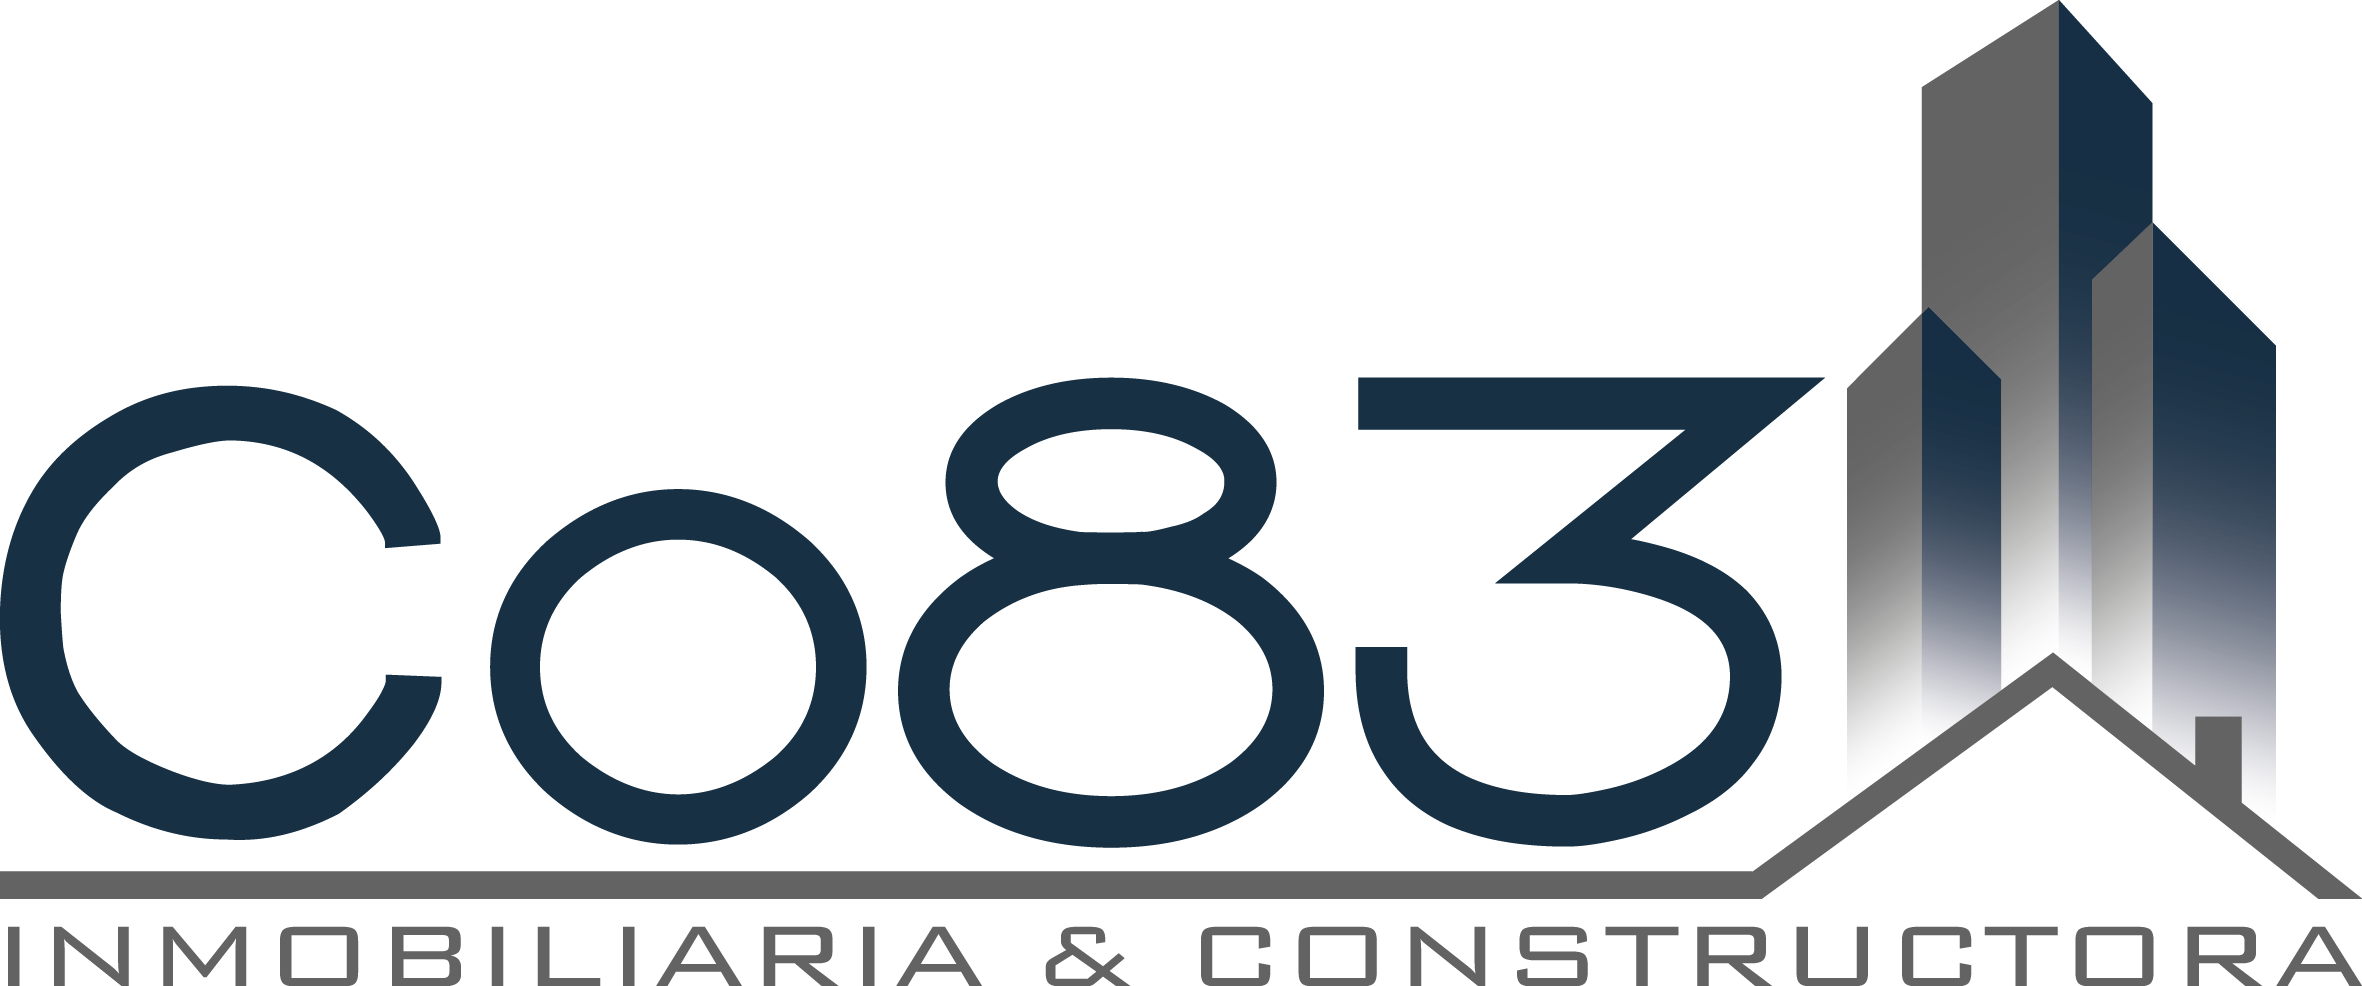 co83_color_logo.png